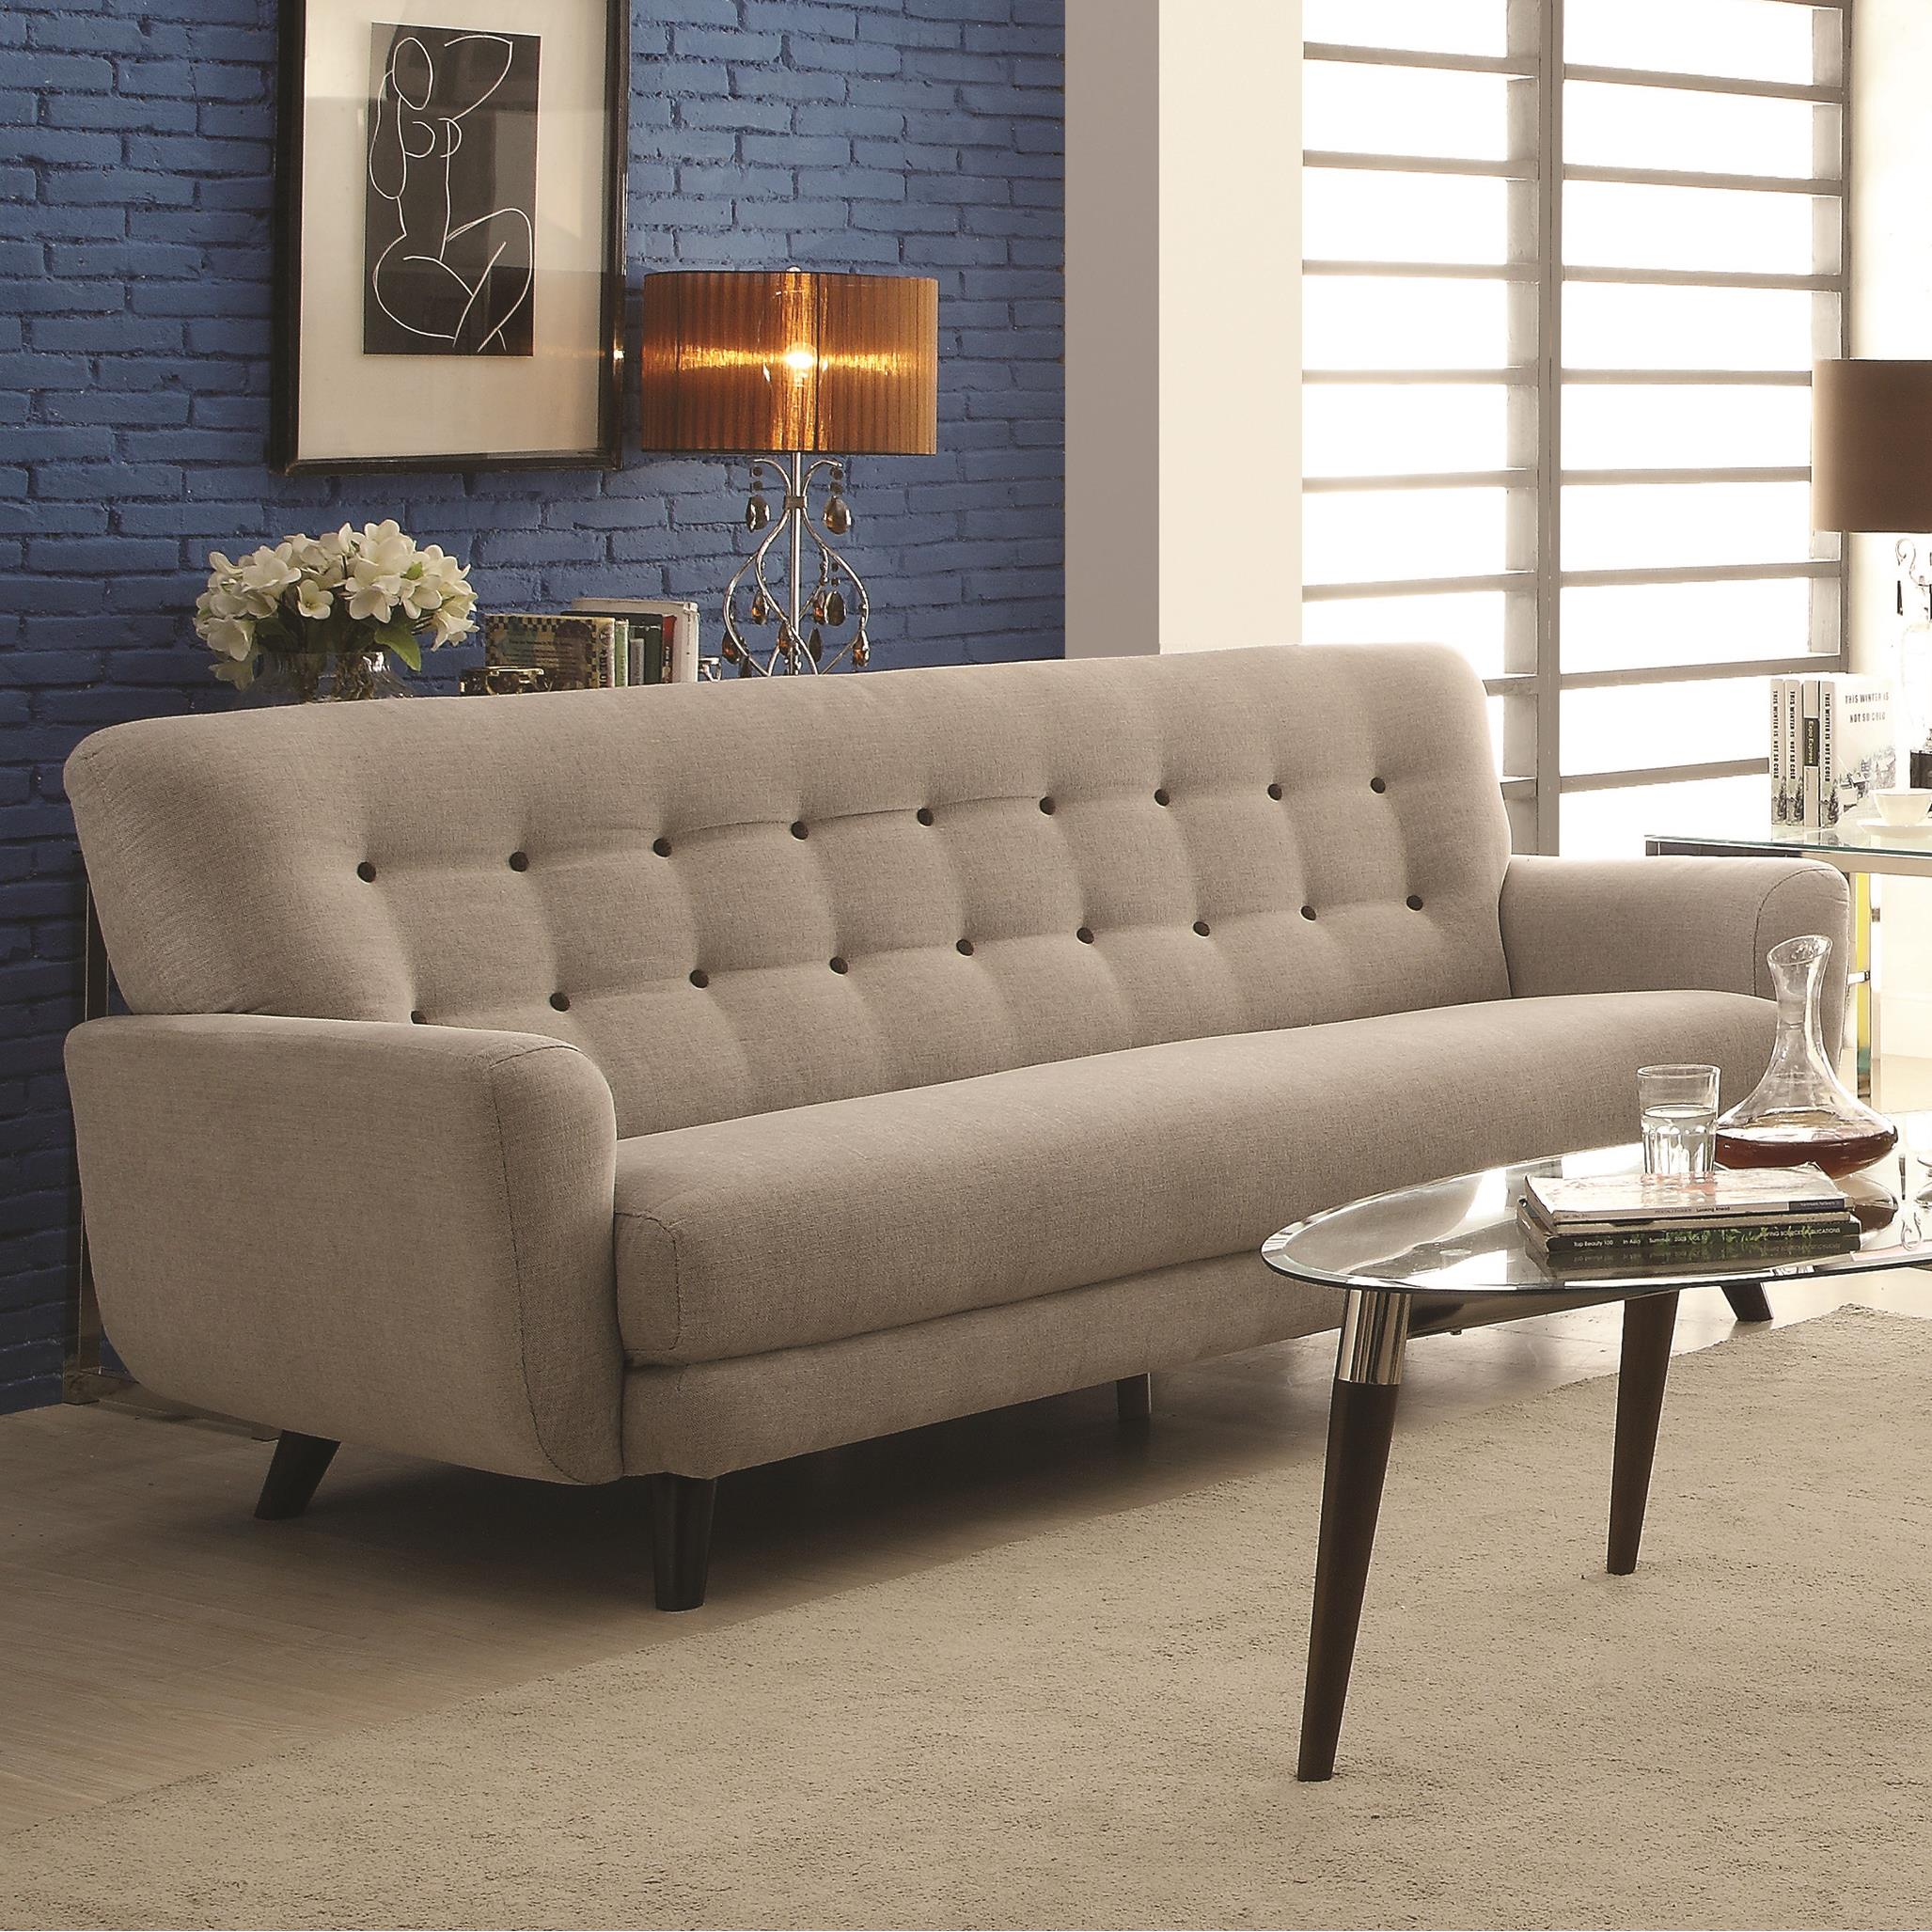 Maguire Contemporary Sofa With Contrast Buttons | Quality With Regard To Sofa With Chairs (View 7 of 15)